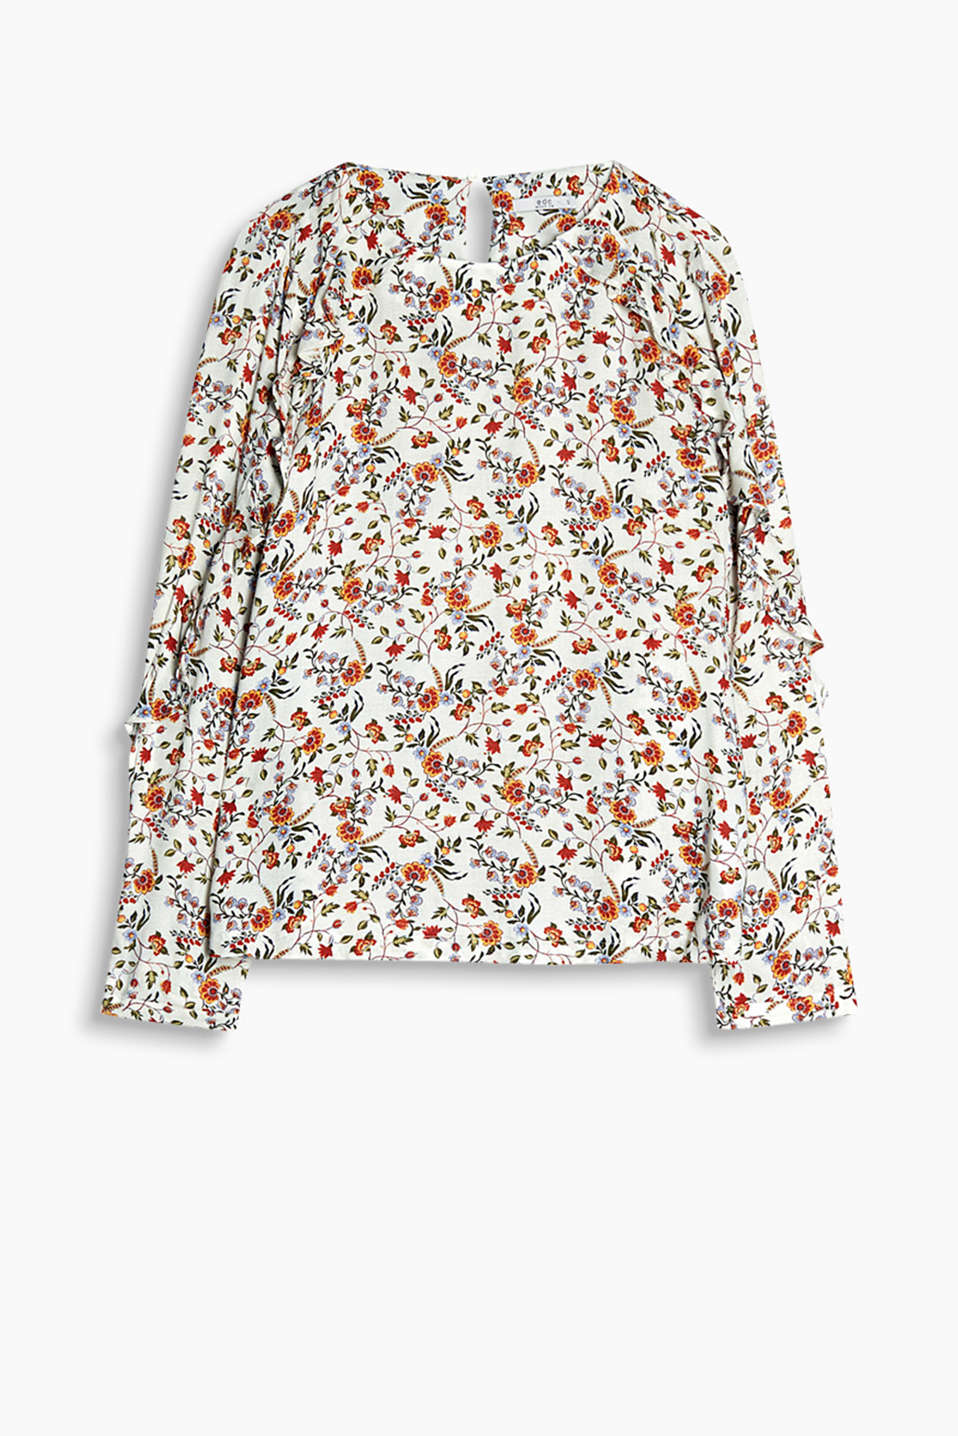 Flowing blouse with colourful floral print and frilled sleeves